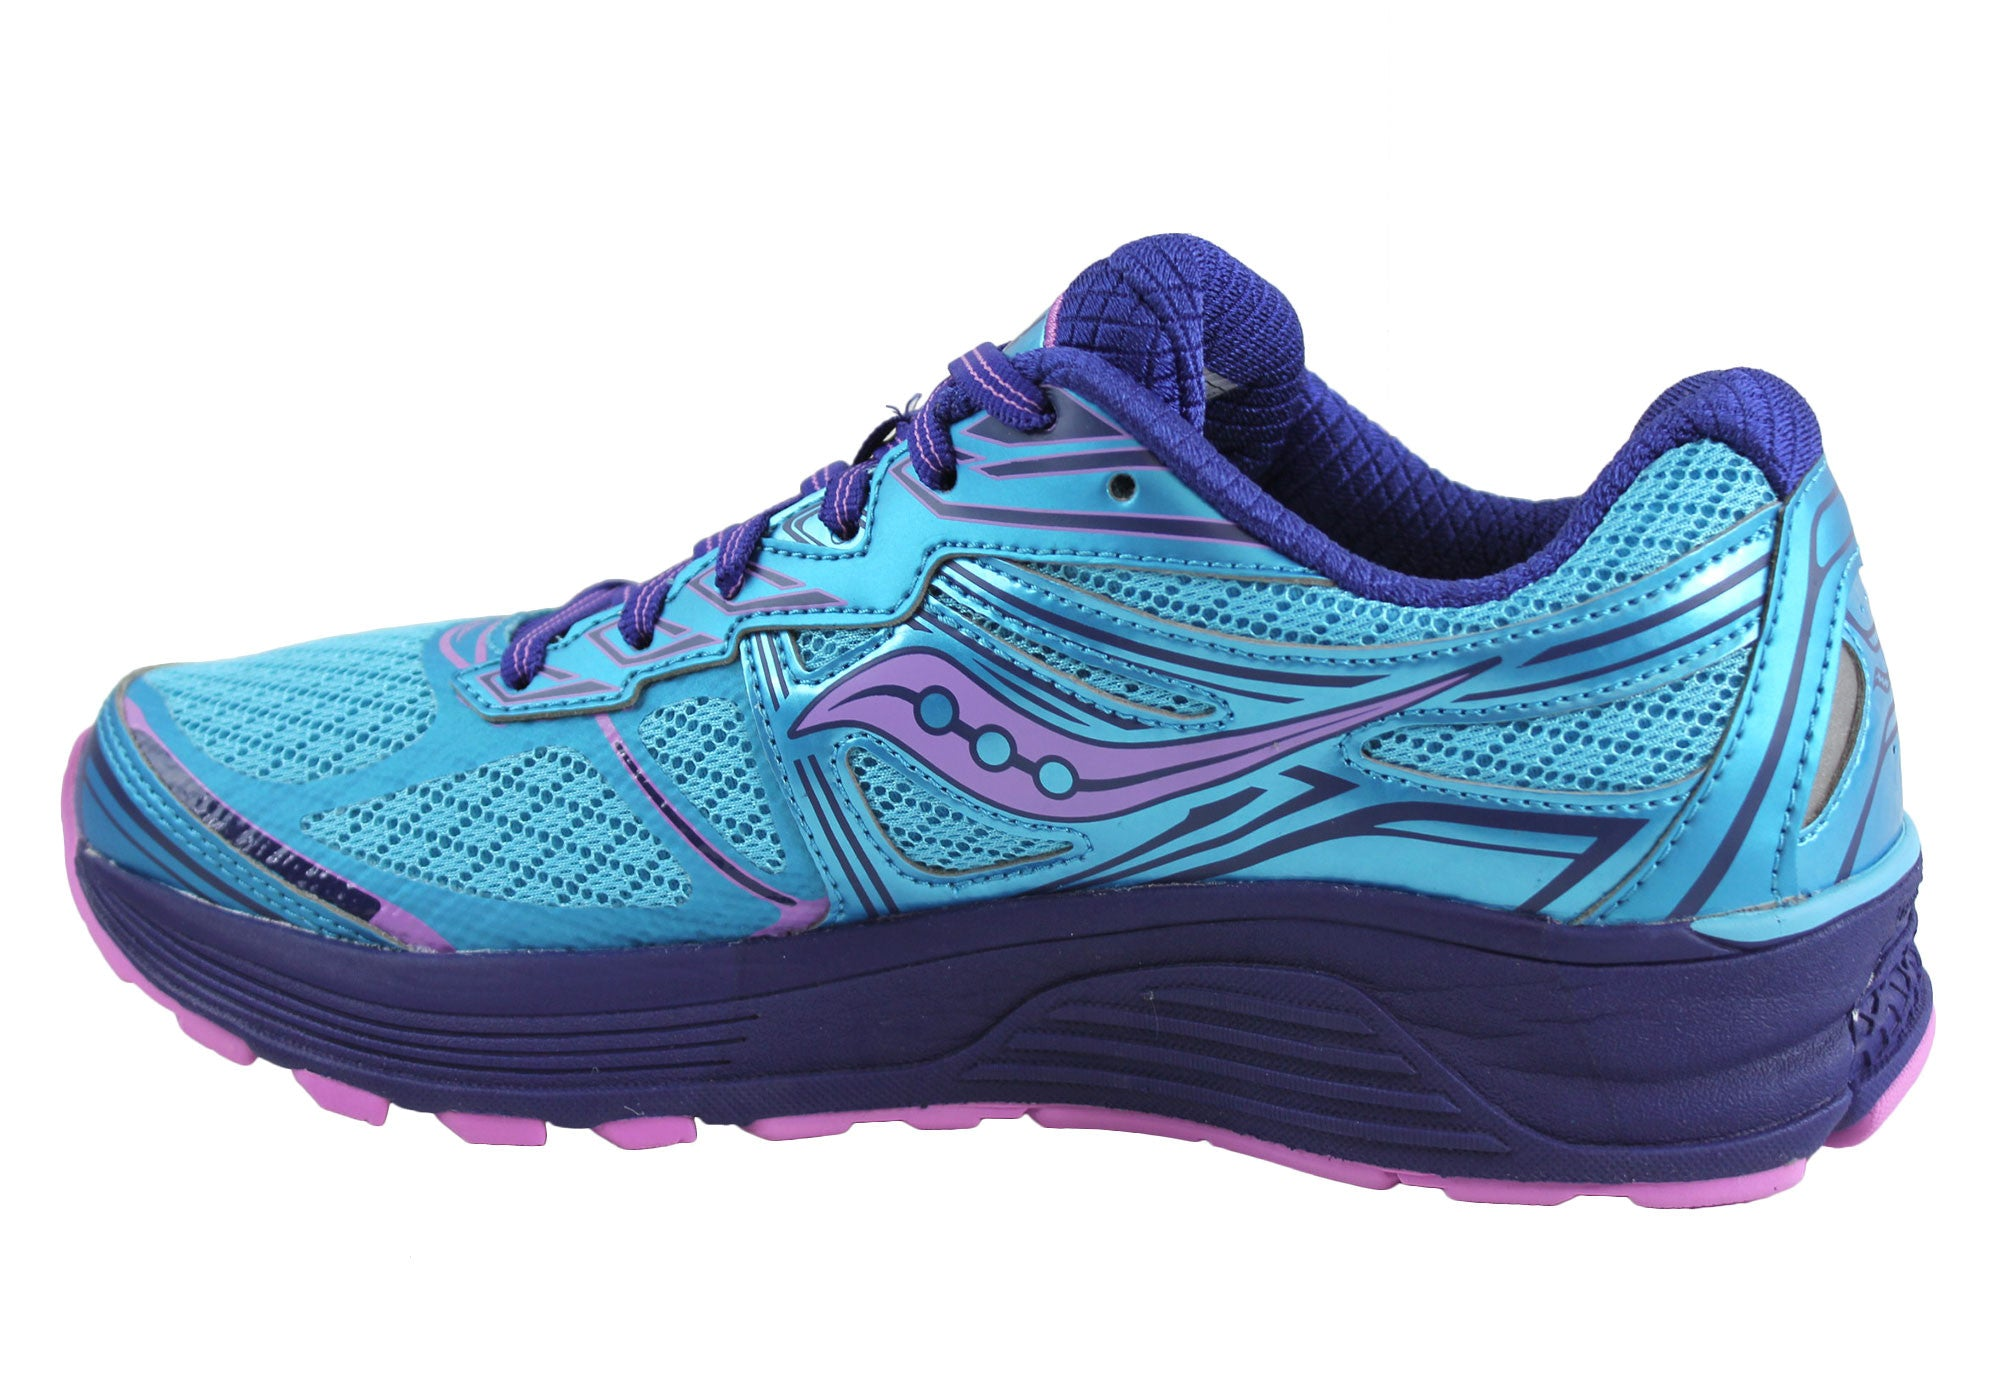 Saucony Guide 9 Womens Premium Cushioned Athletic Shoes